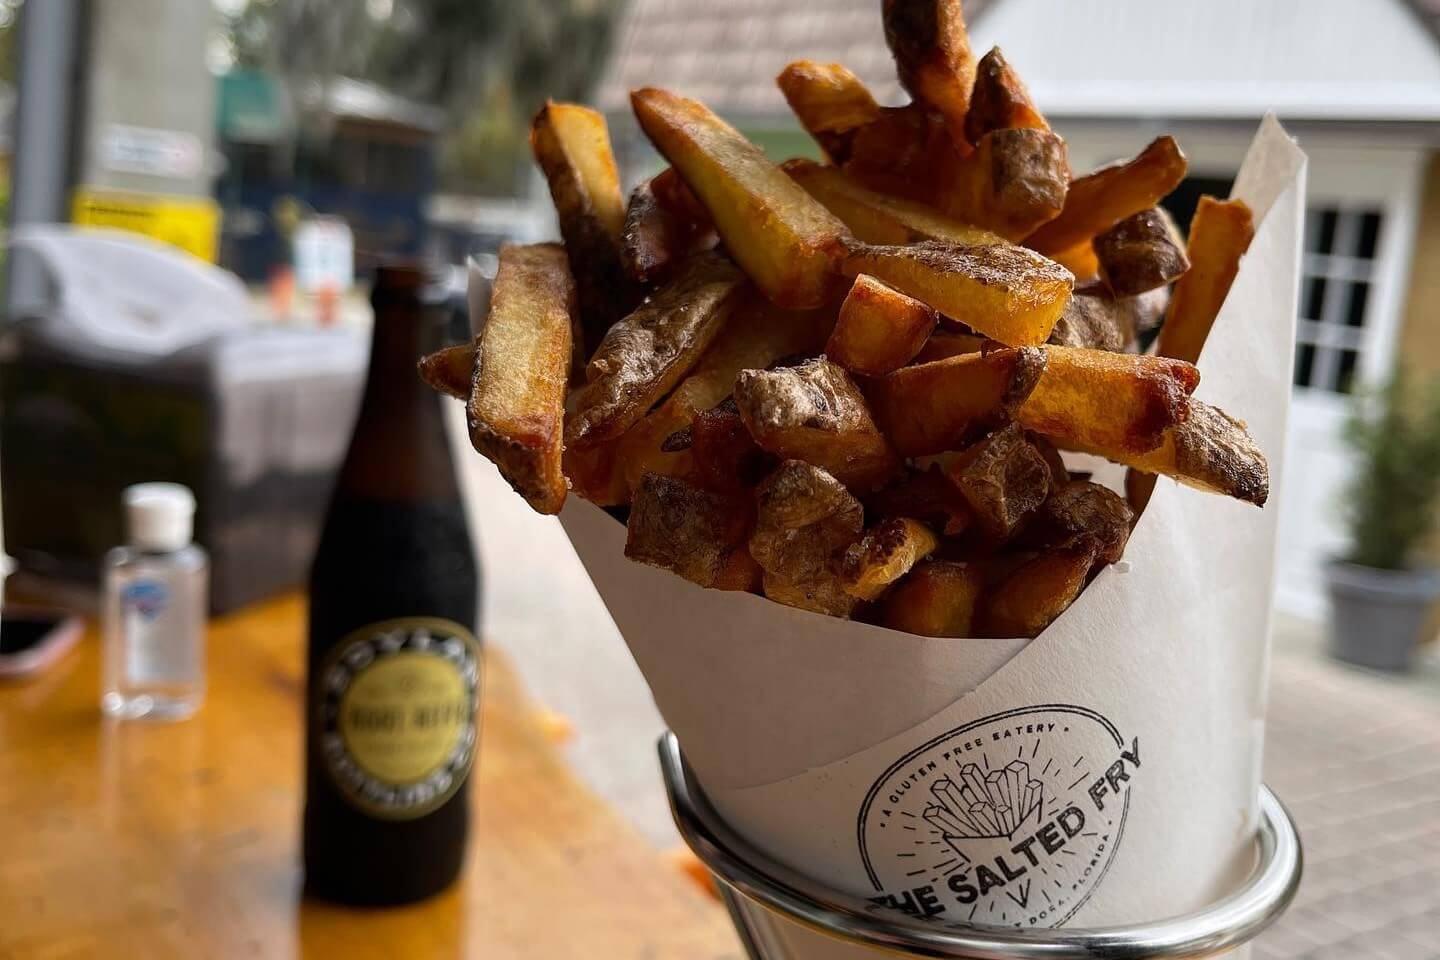 Photo of fries wrapped in a paper container sitting on a table.